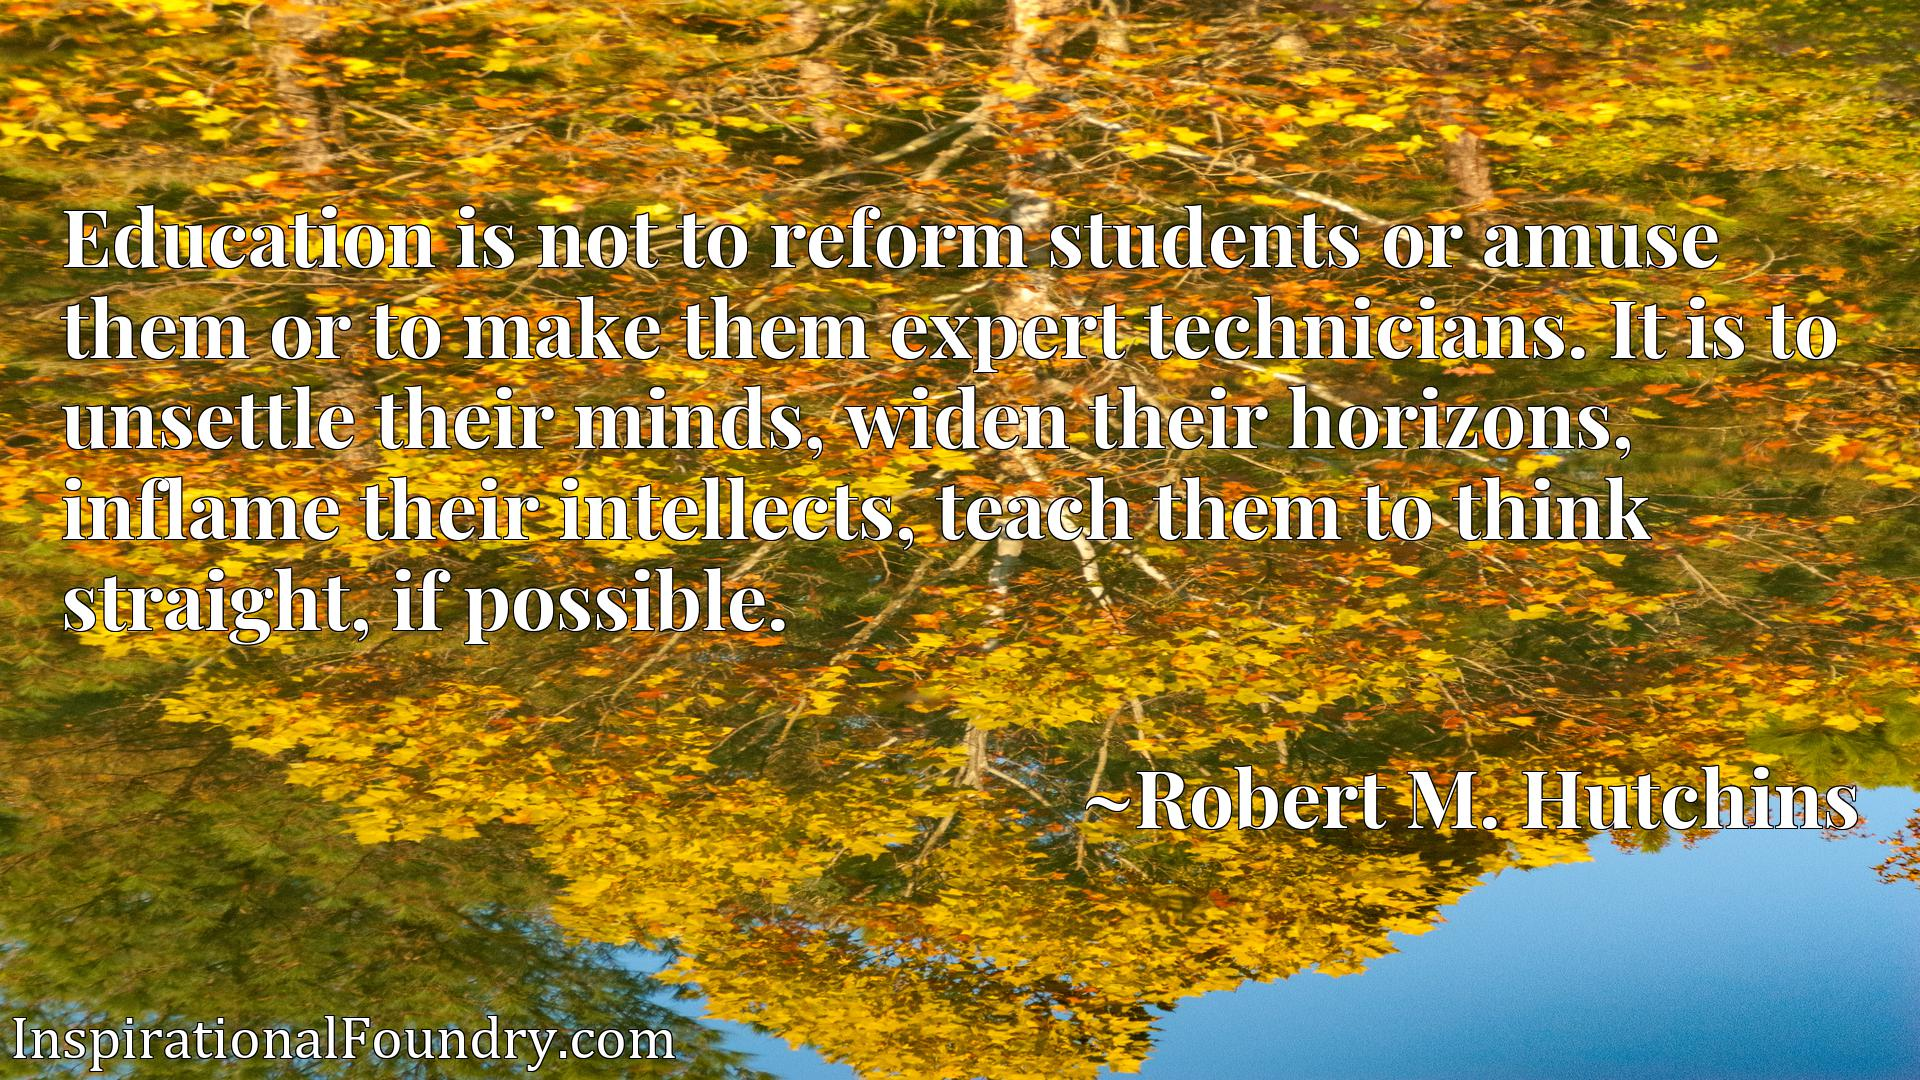 Education is not to reform students or amuse them or to make them expert technicians. It is to unsettle their minds, widen their horizons, inflame their intellects, teach them to think straight, if possible.